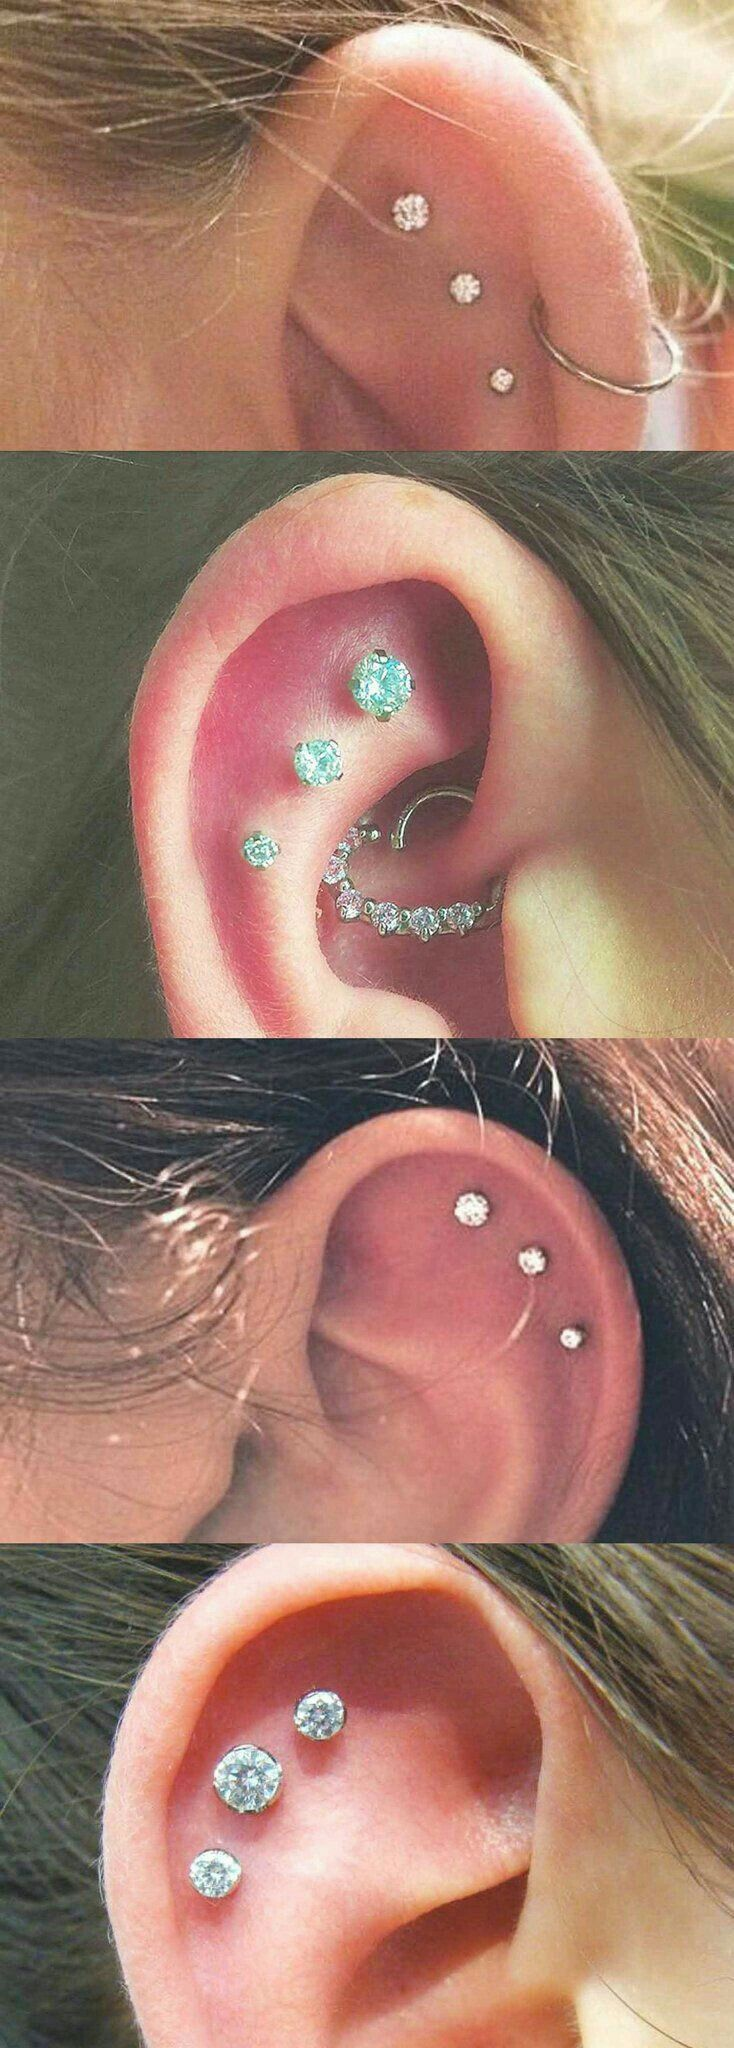 Double tongue piercing names   best Joyas images on Pinterest  Necklaces Piercing ideas and Curls